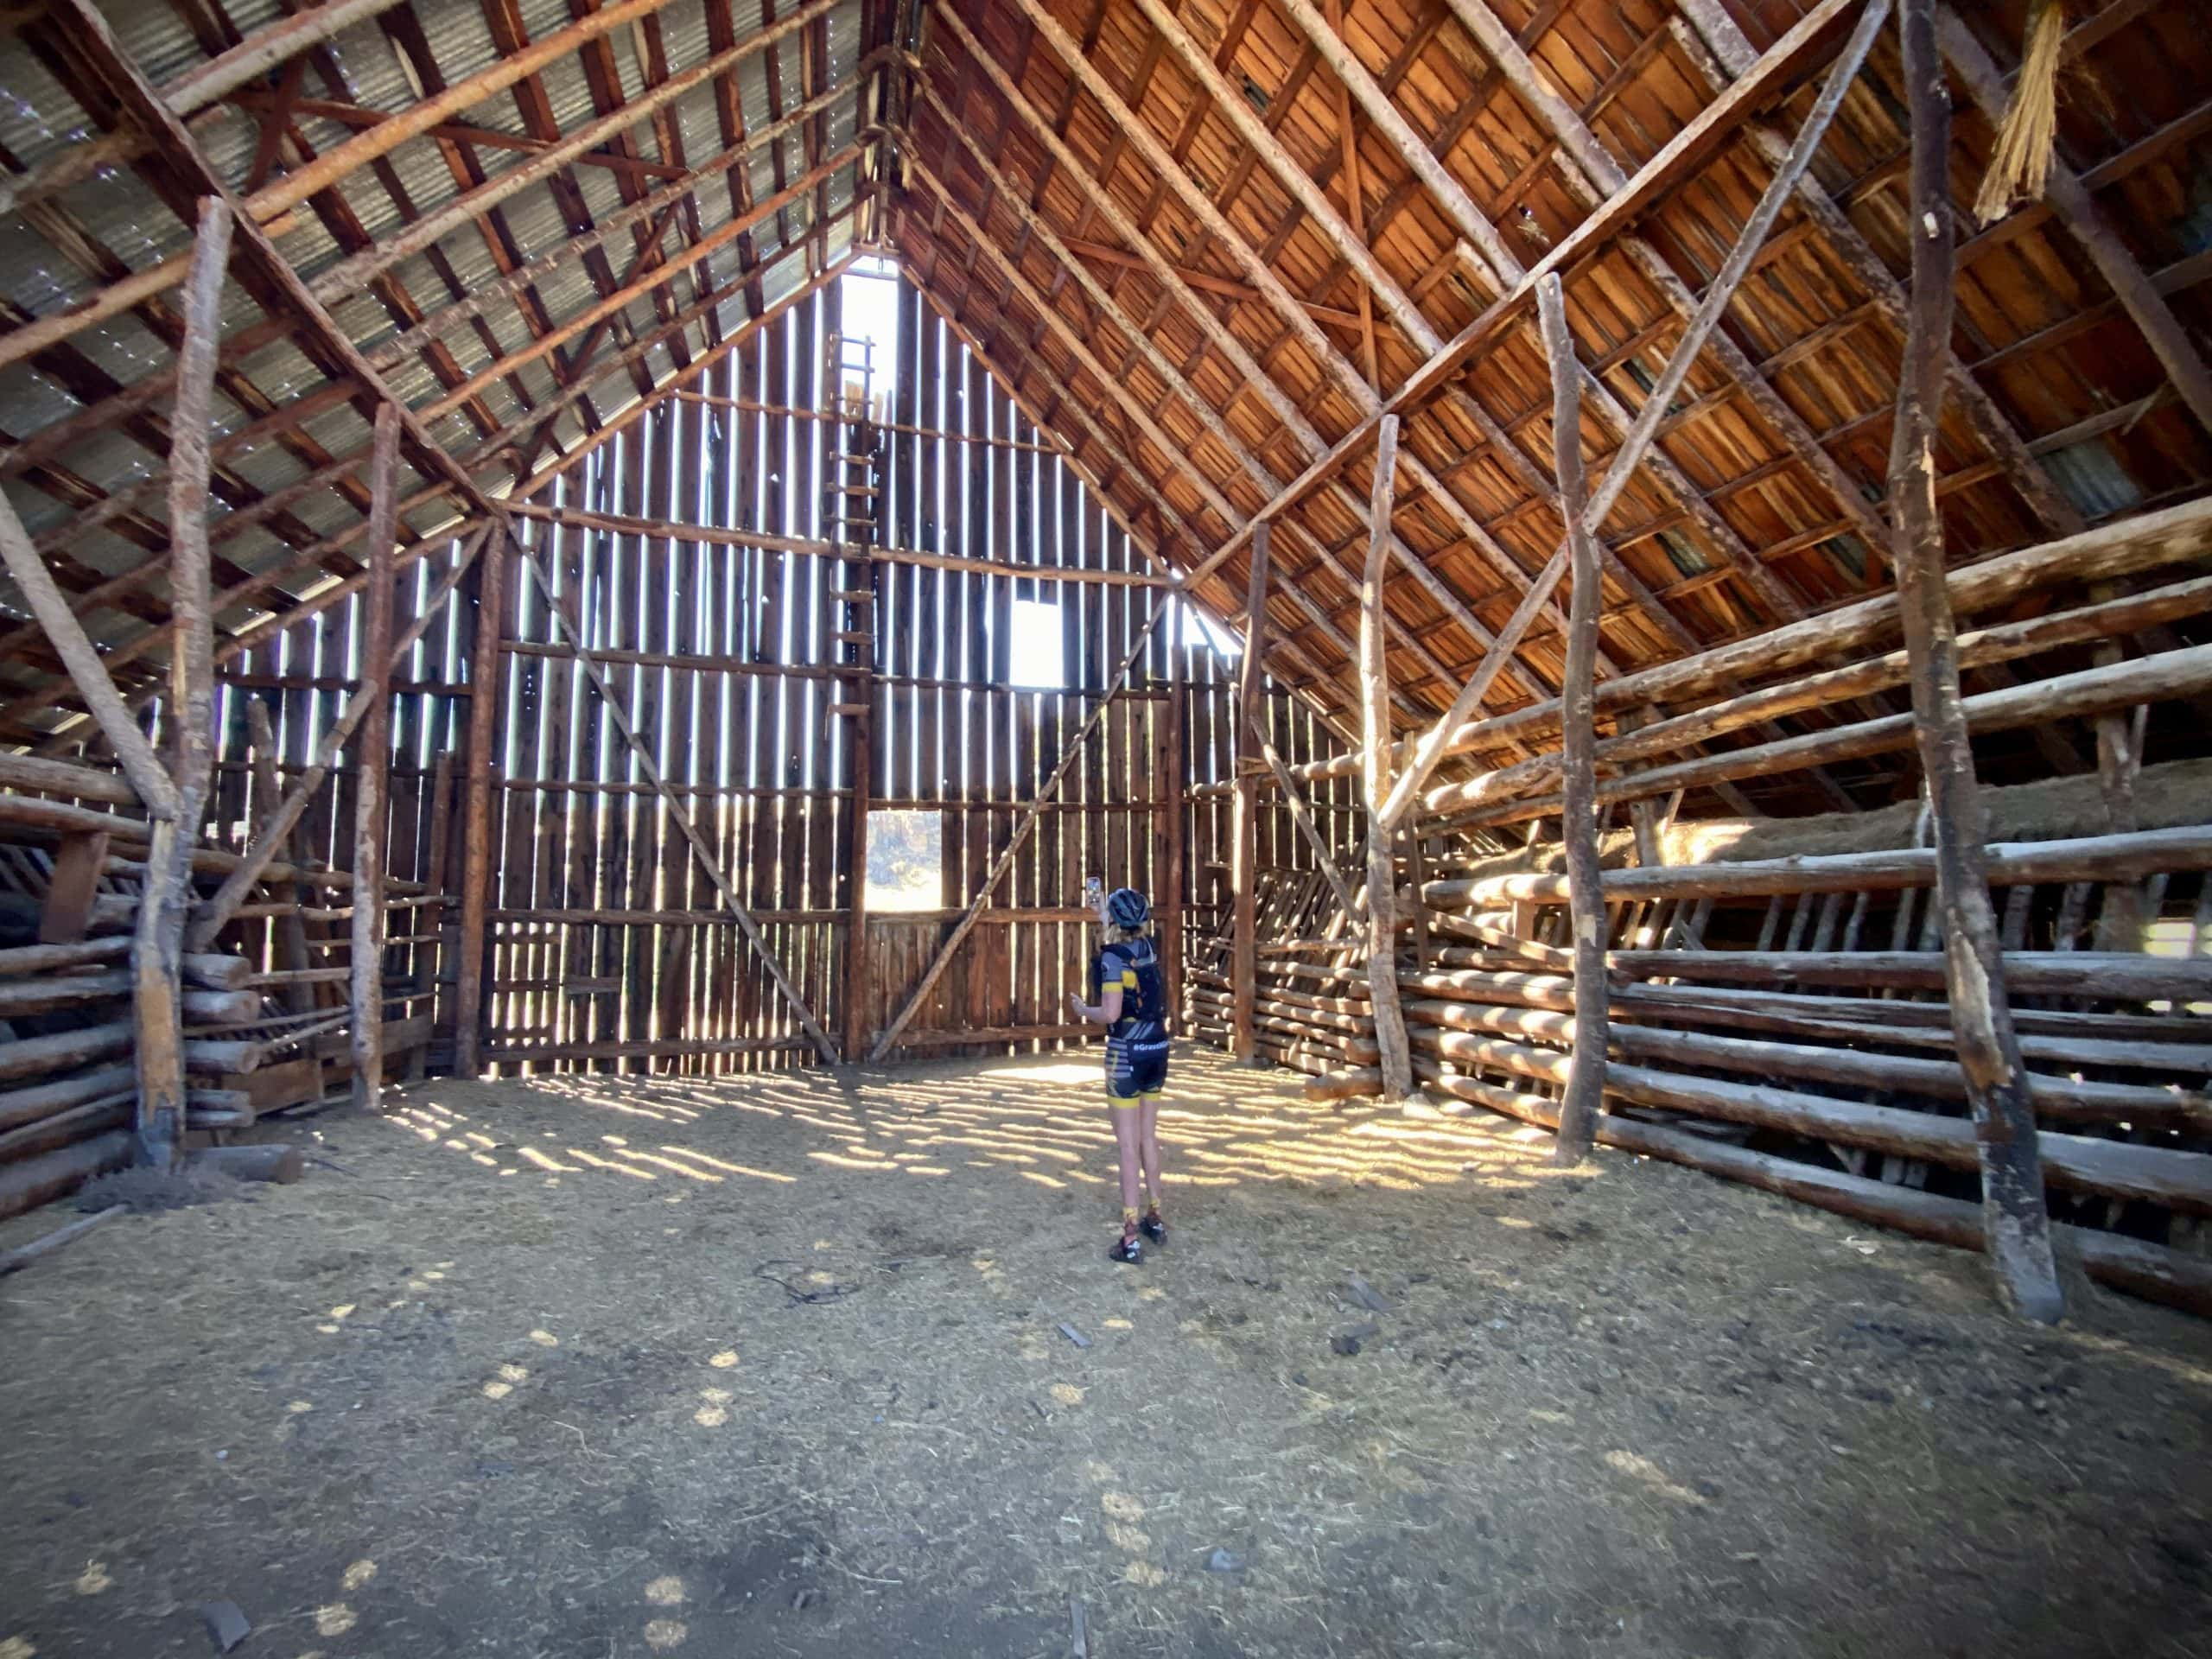 Inside one of the out buildings at Murderers Creek Ranch in Oregon.